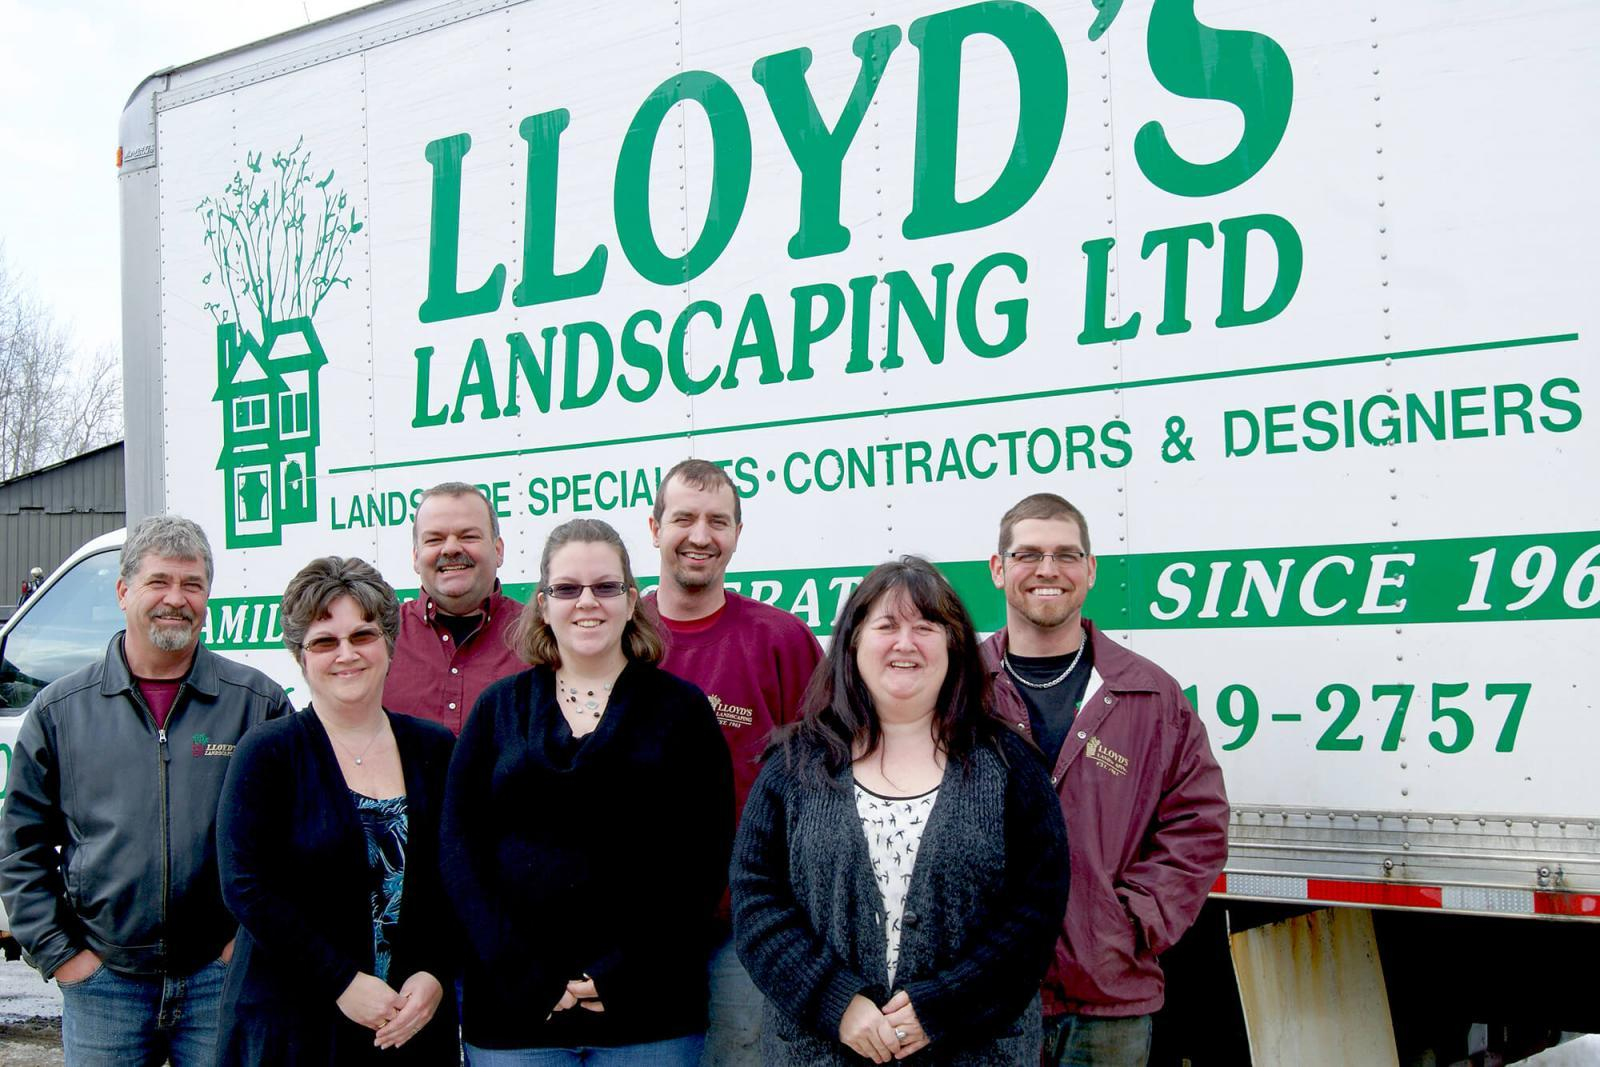 Lloyd's Landscaping family celebrates 50 years on the job